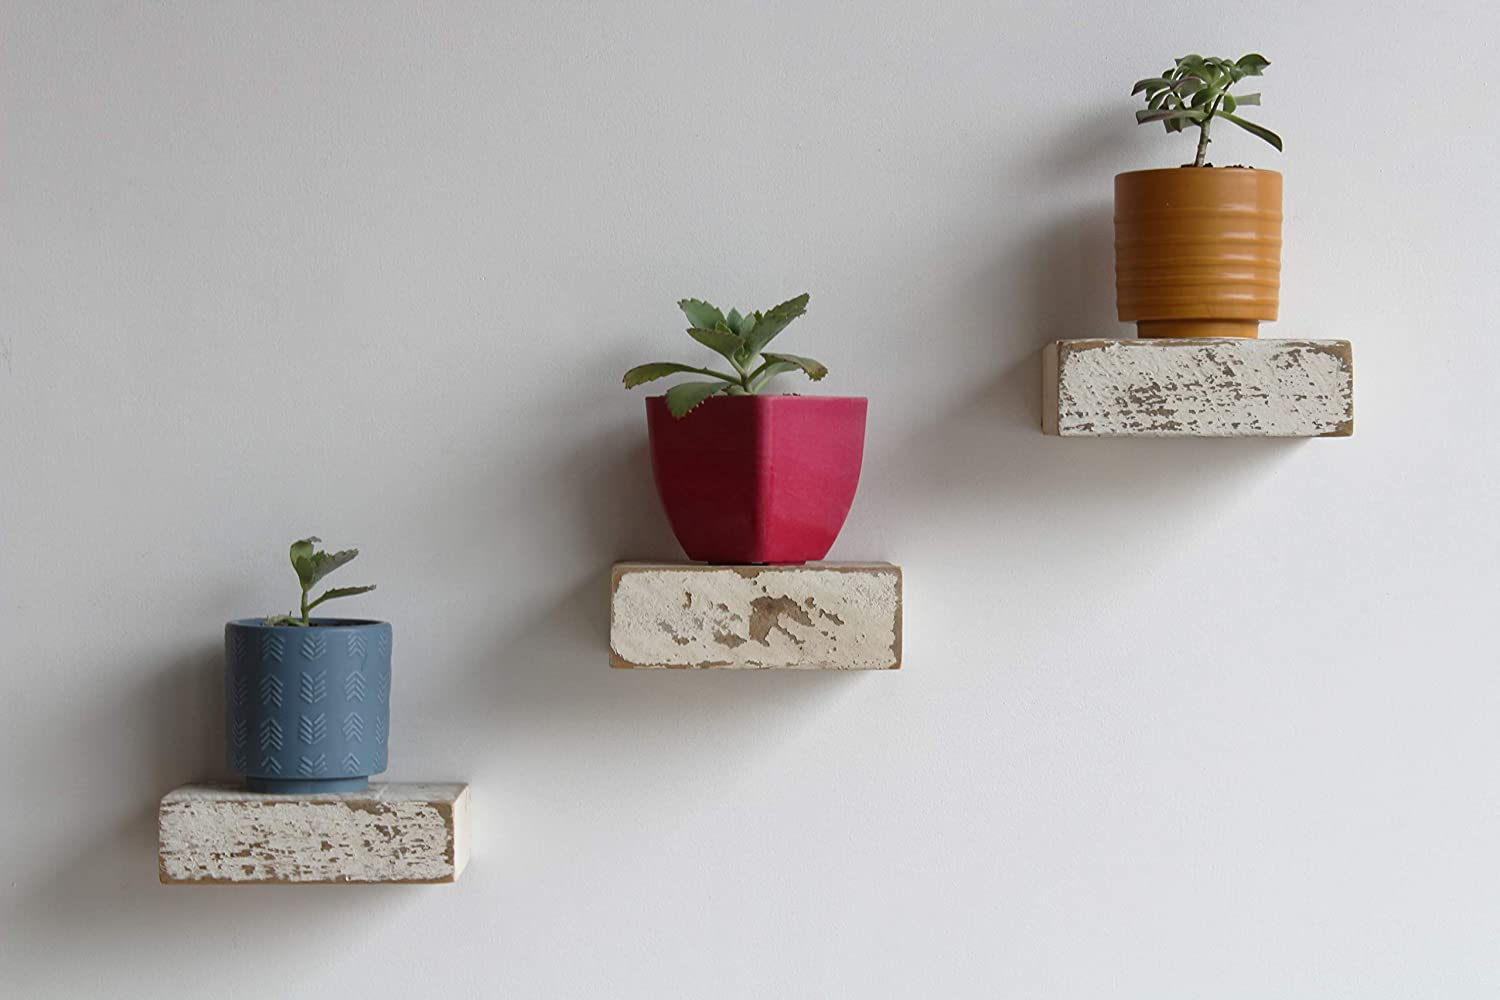 Amazon Com Urban Legacy Small Reclaimed Barn Wood Floating Shelves Set Of 3 Genuine Handcrafted By Amish Artians Rustic Wall Storage For Plants Photos And More White Wash 6 X